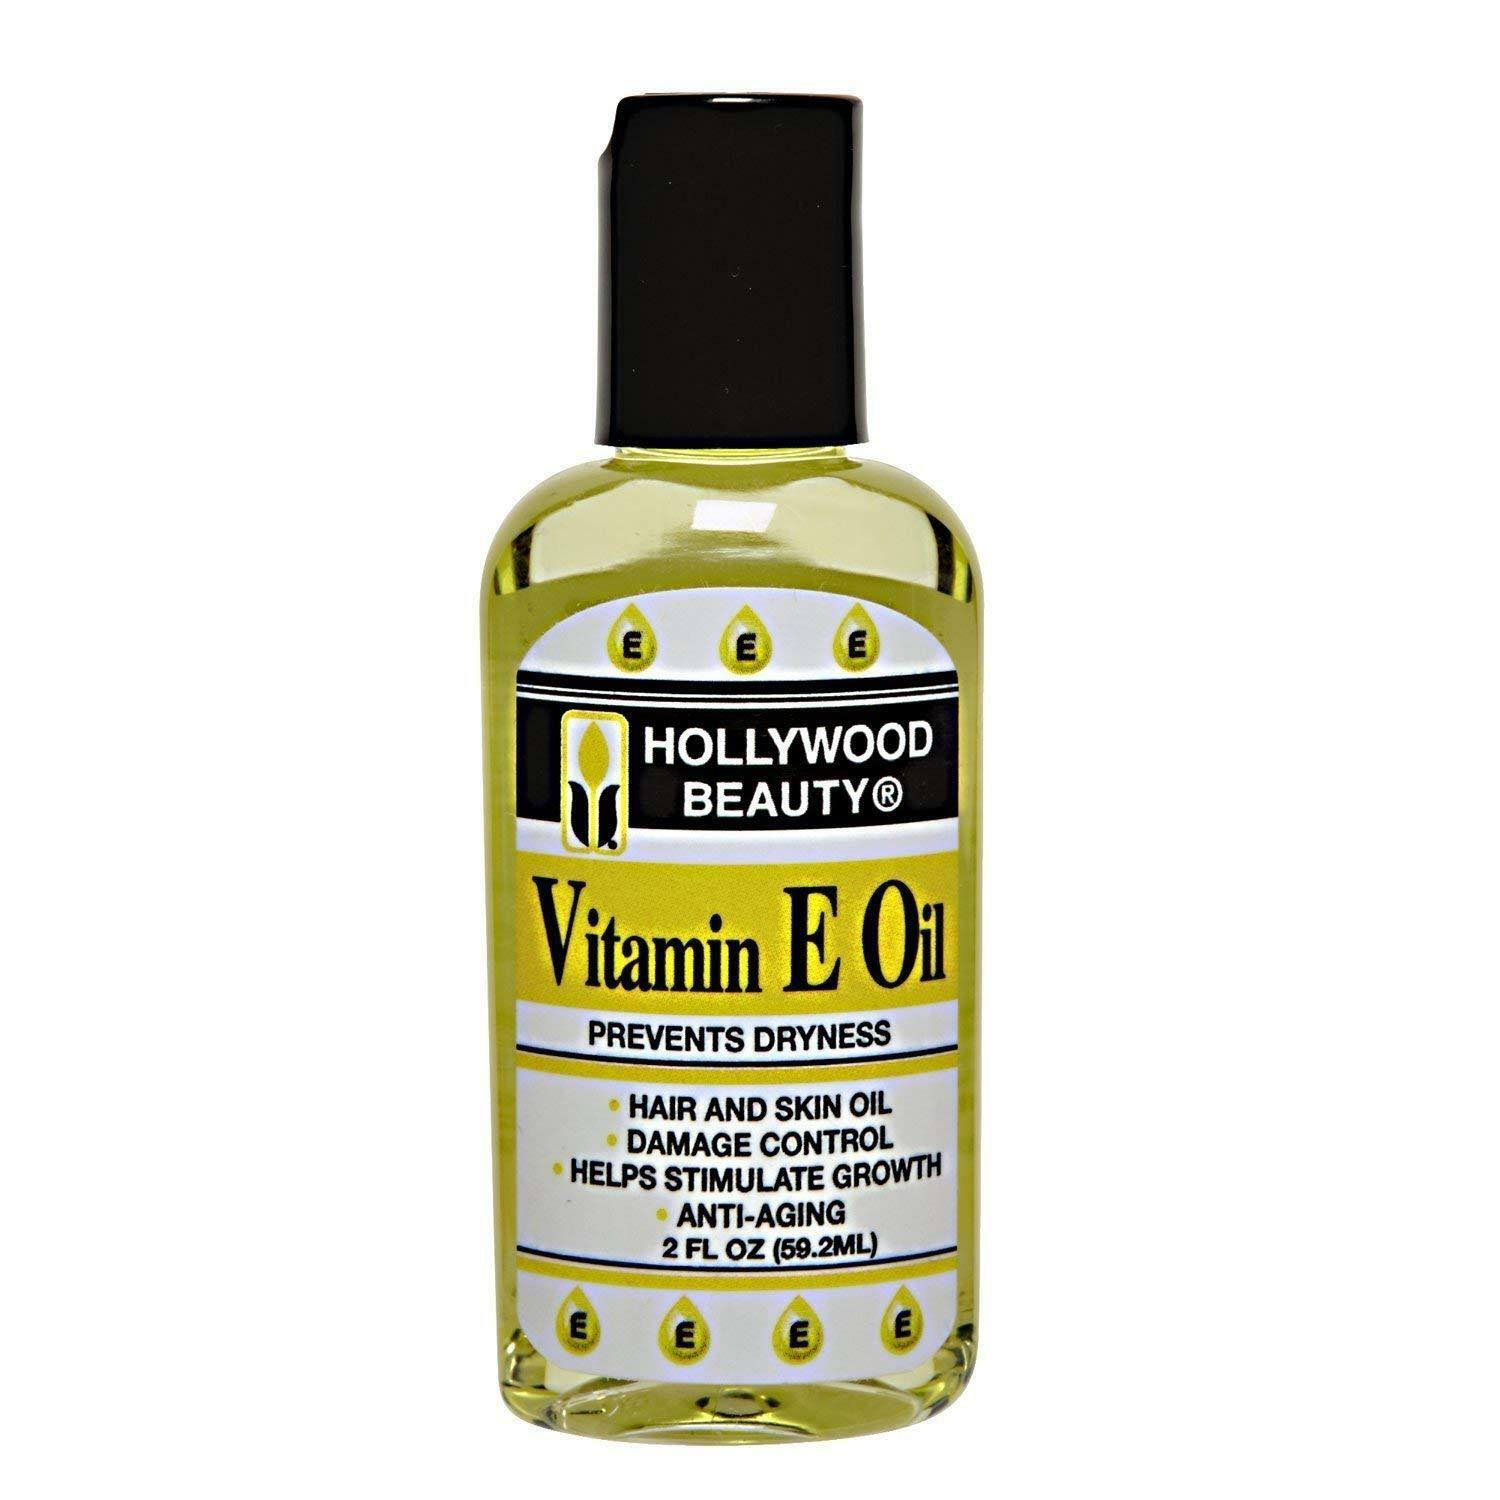 Hollywood Beauty Vitamin E Oil - 2oz